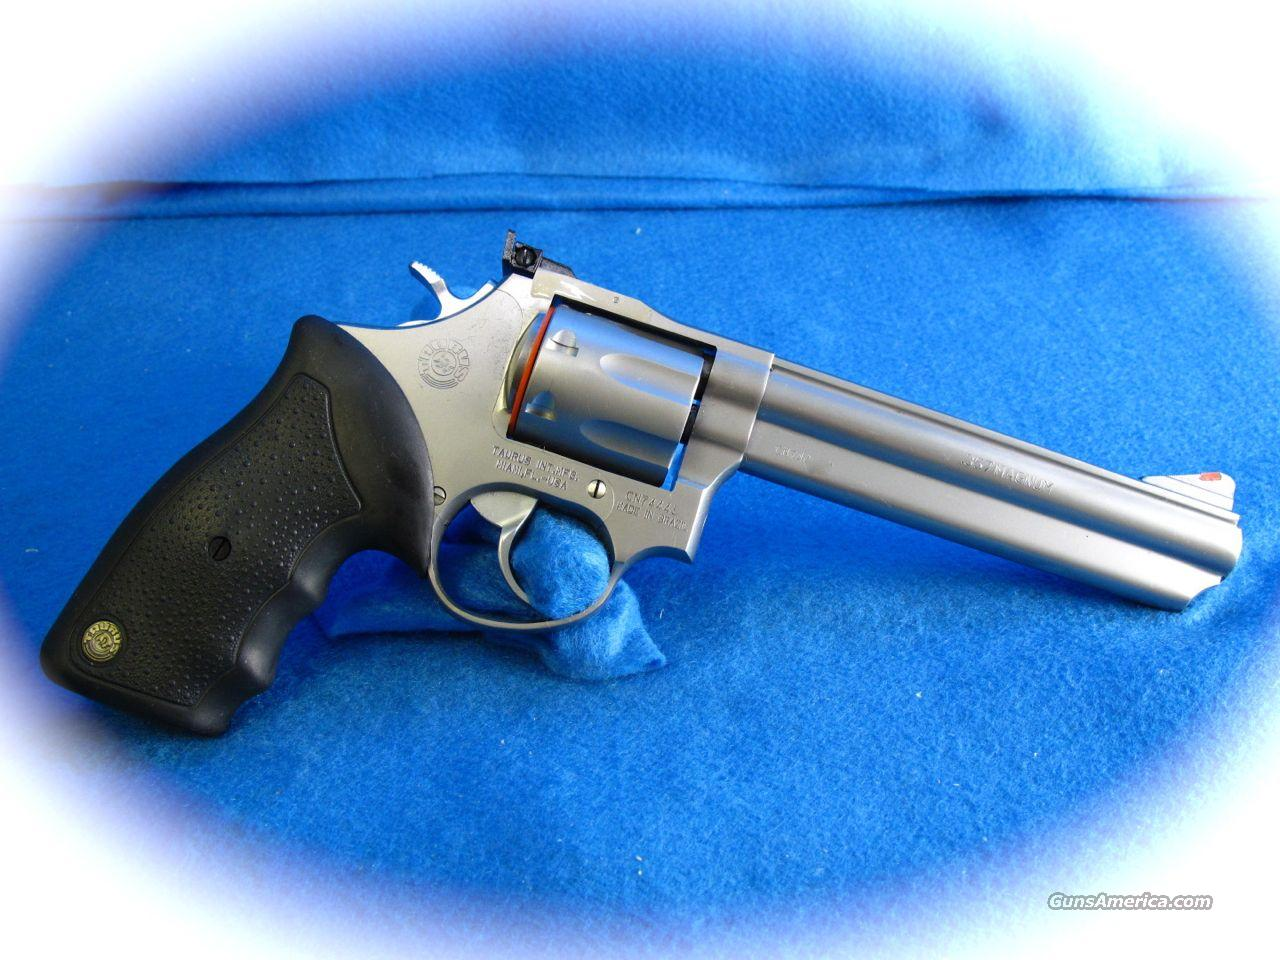 Taurus Model 66 Stainless Steel 6 inch .357 Mag Revolver  Guns > Pistols > Taurus Pistols/Revolvers > Revolvers